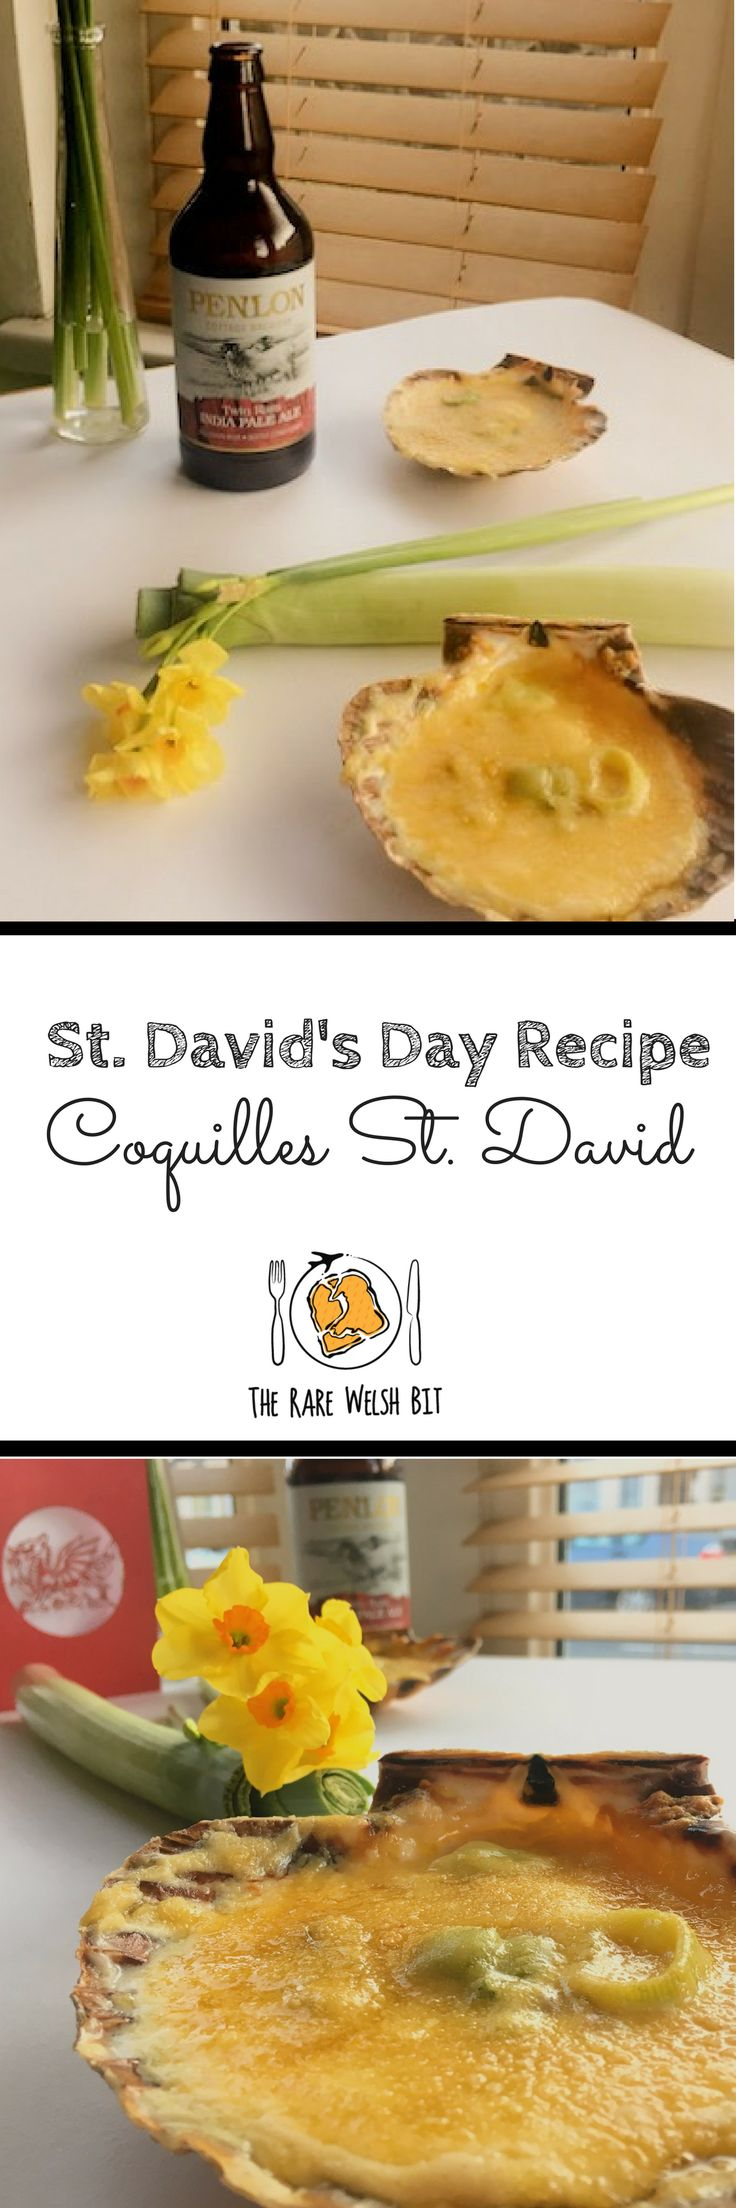 St. David's Day Welsh food recipes don't get much better than this - in a Welsh Rarebit twist on the traditional French dish, Coquilles St. David consists of scallops in shells with leeks, pale ale, Welsh cheese and mustard powder. #stdavidsday #wales #welshfood #welsh #welshrarebit #scallops #coquillestjacques #welshbloggers #thisiswales #gwladgwlad #fooddrinkwales